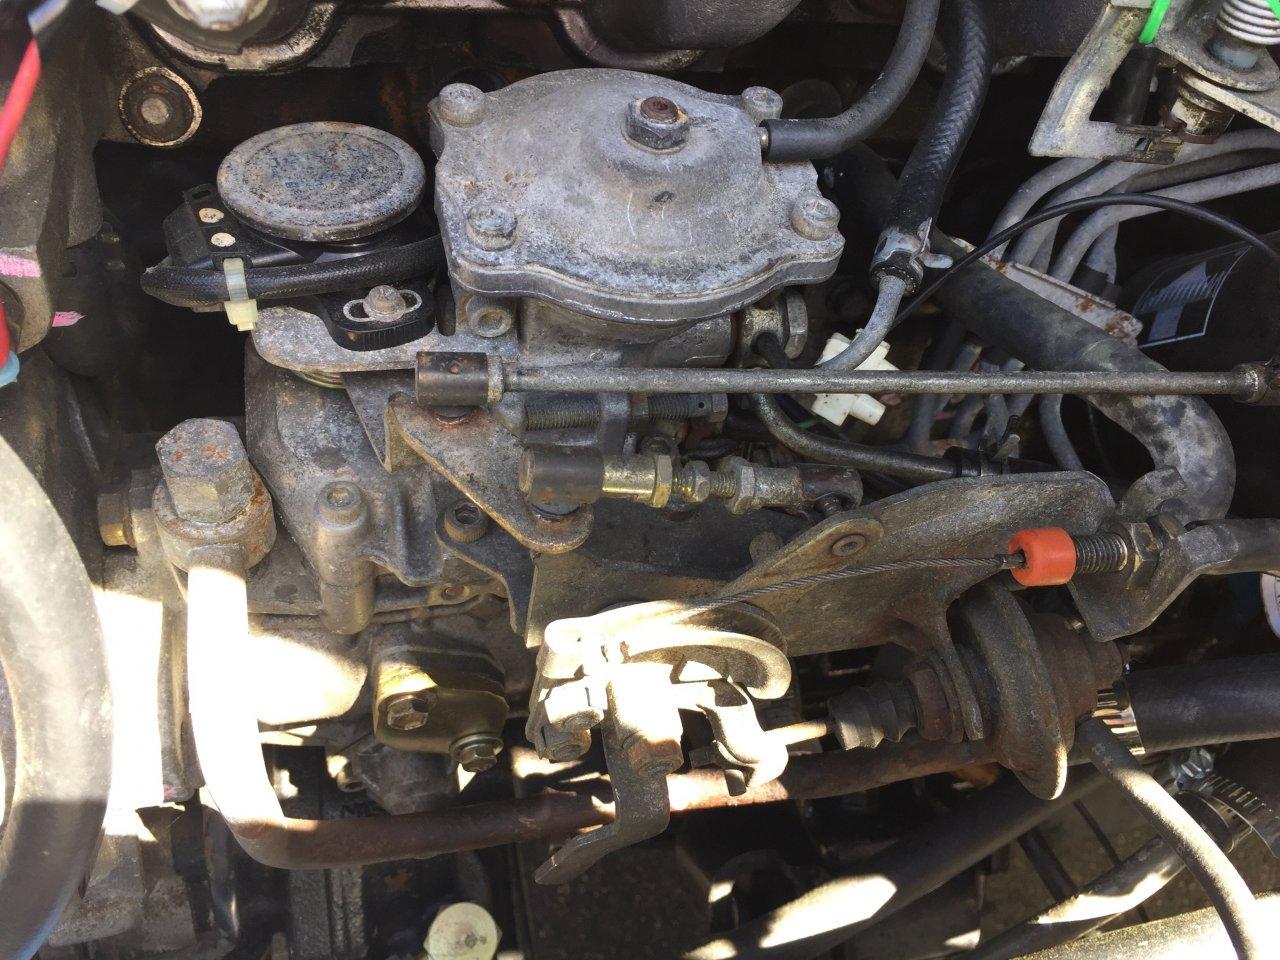 1HD-T over reving on start up | Page 2 | IH8MUD Forum